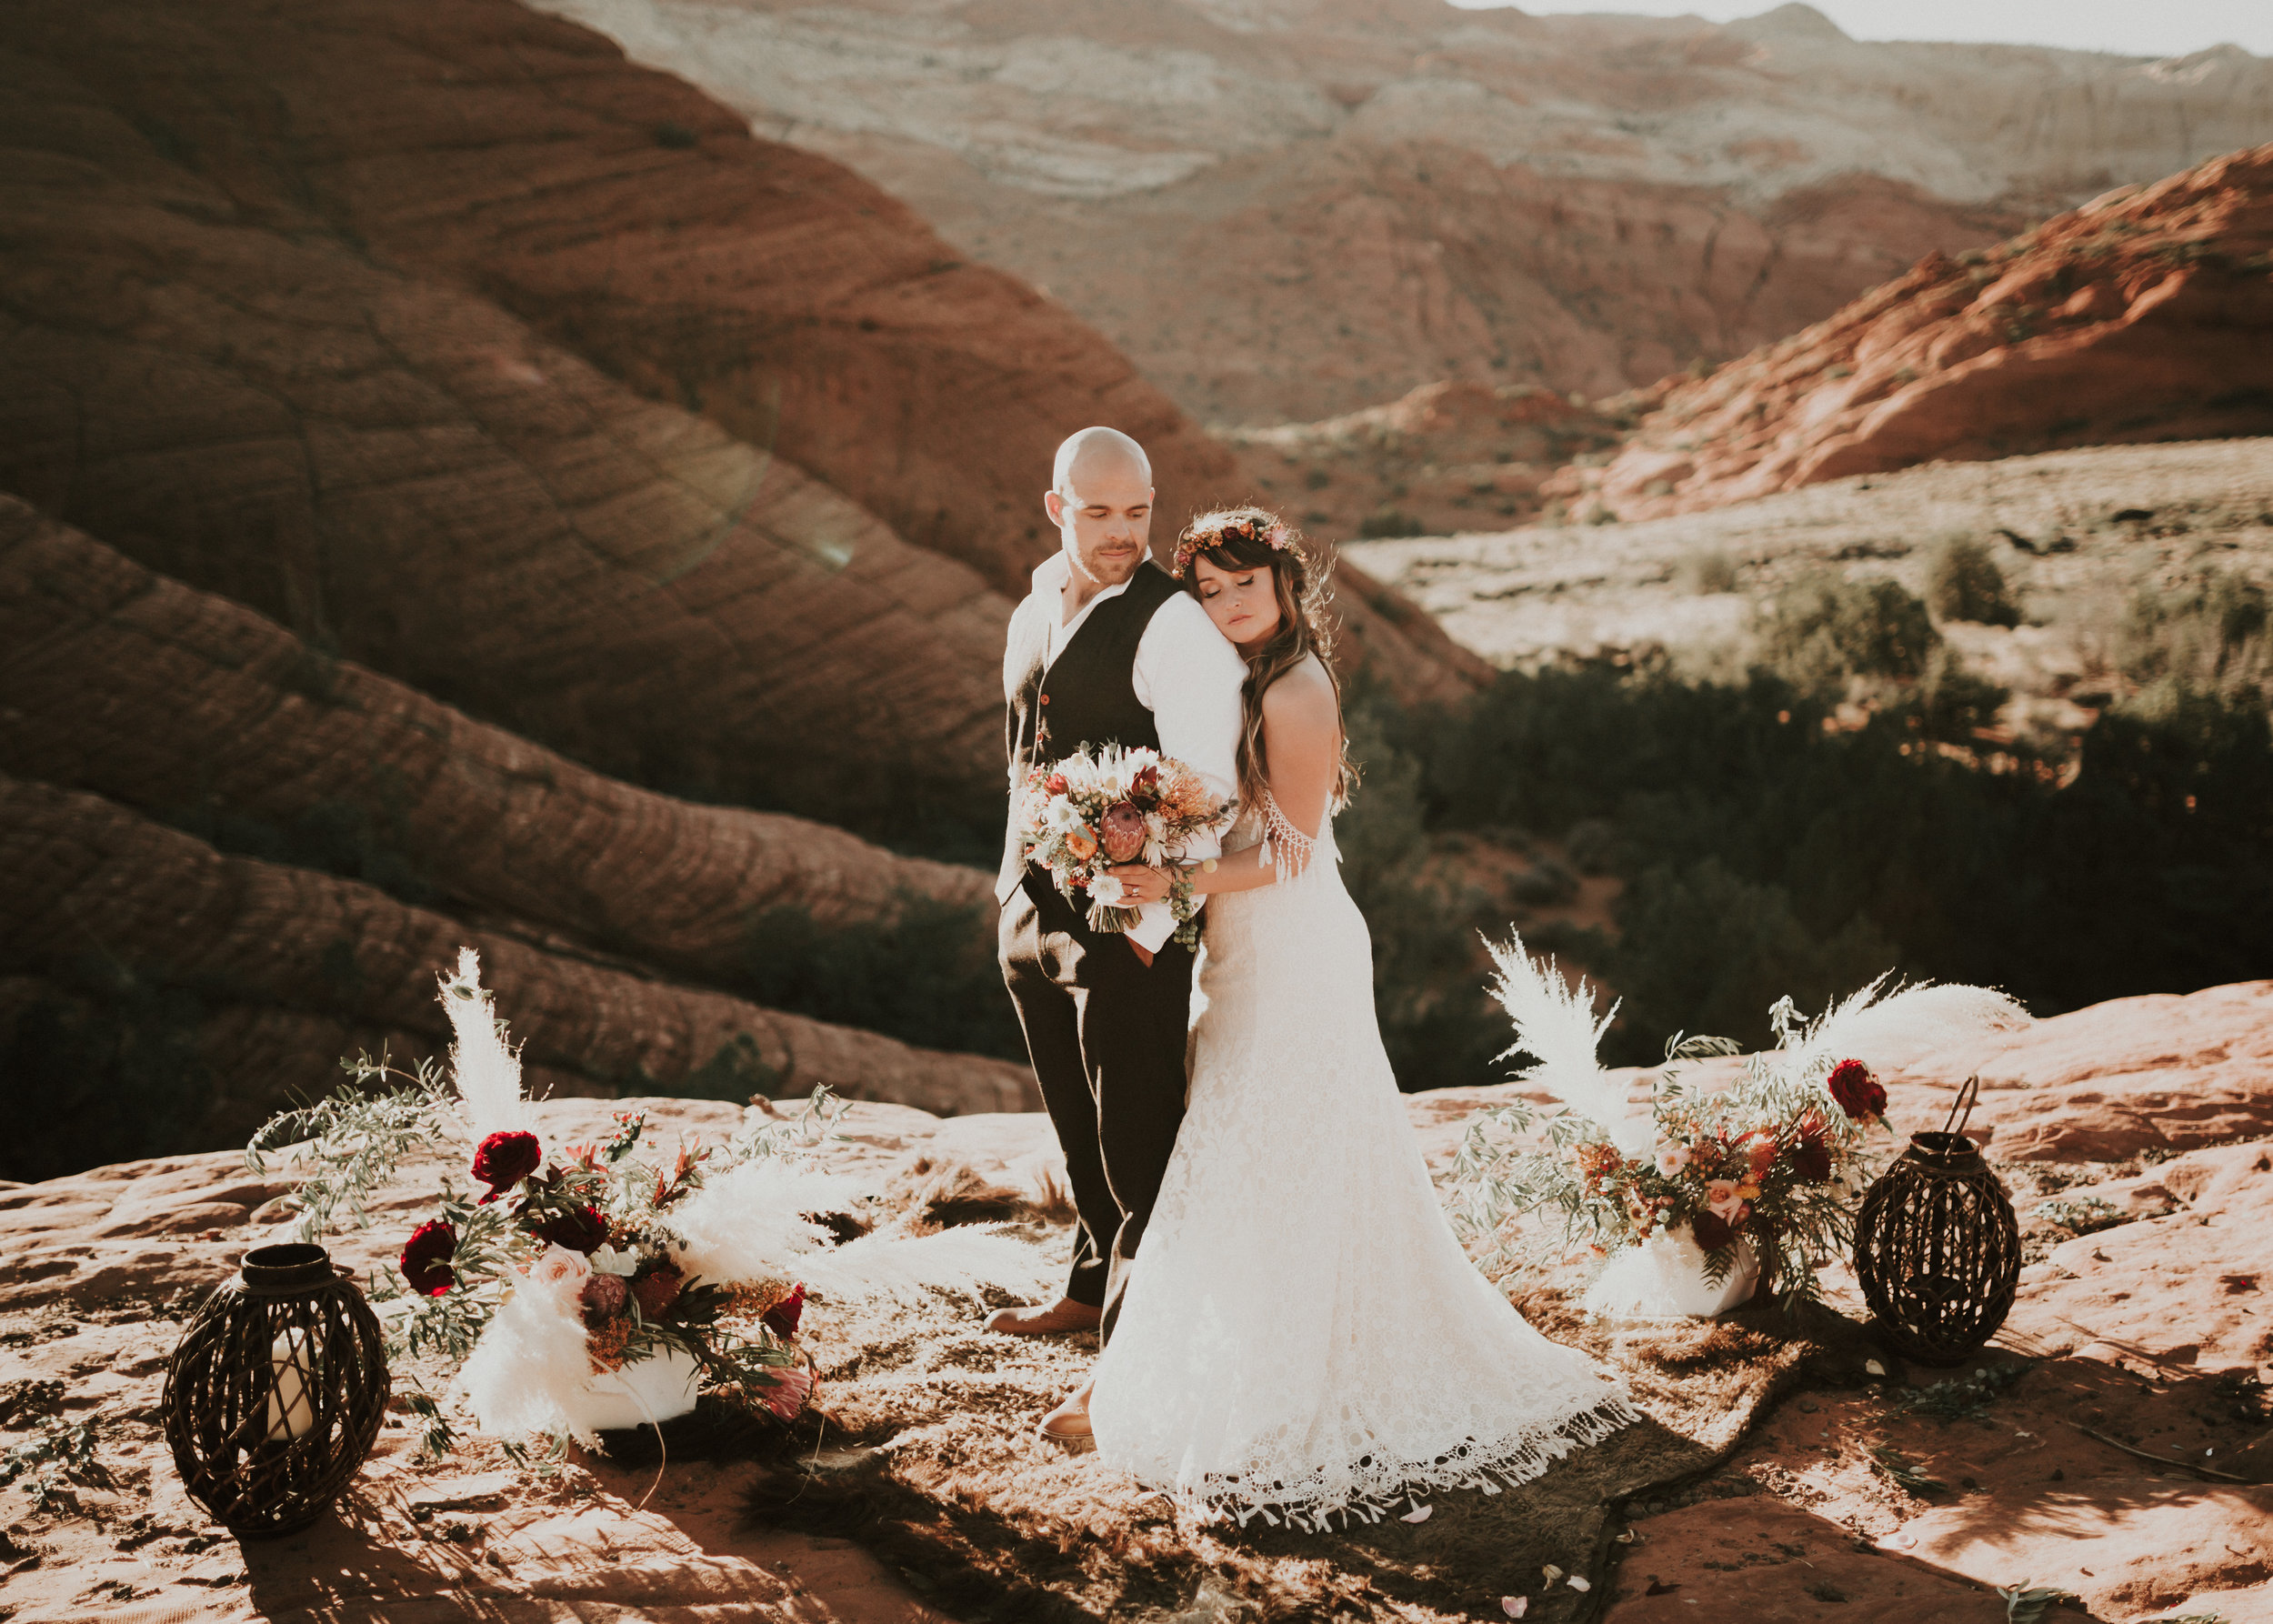 Destination elopement wedding